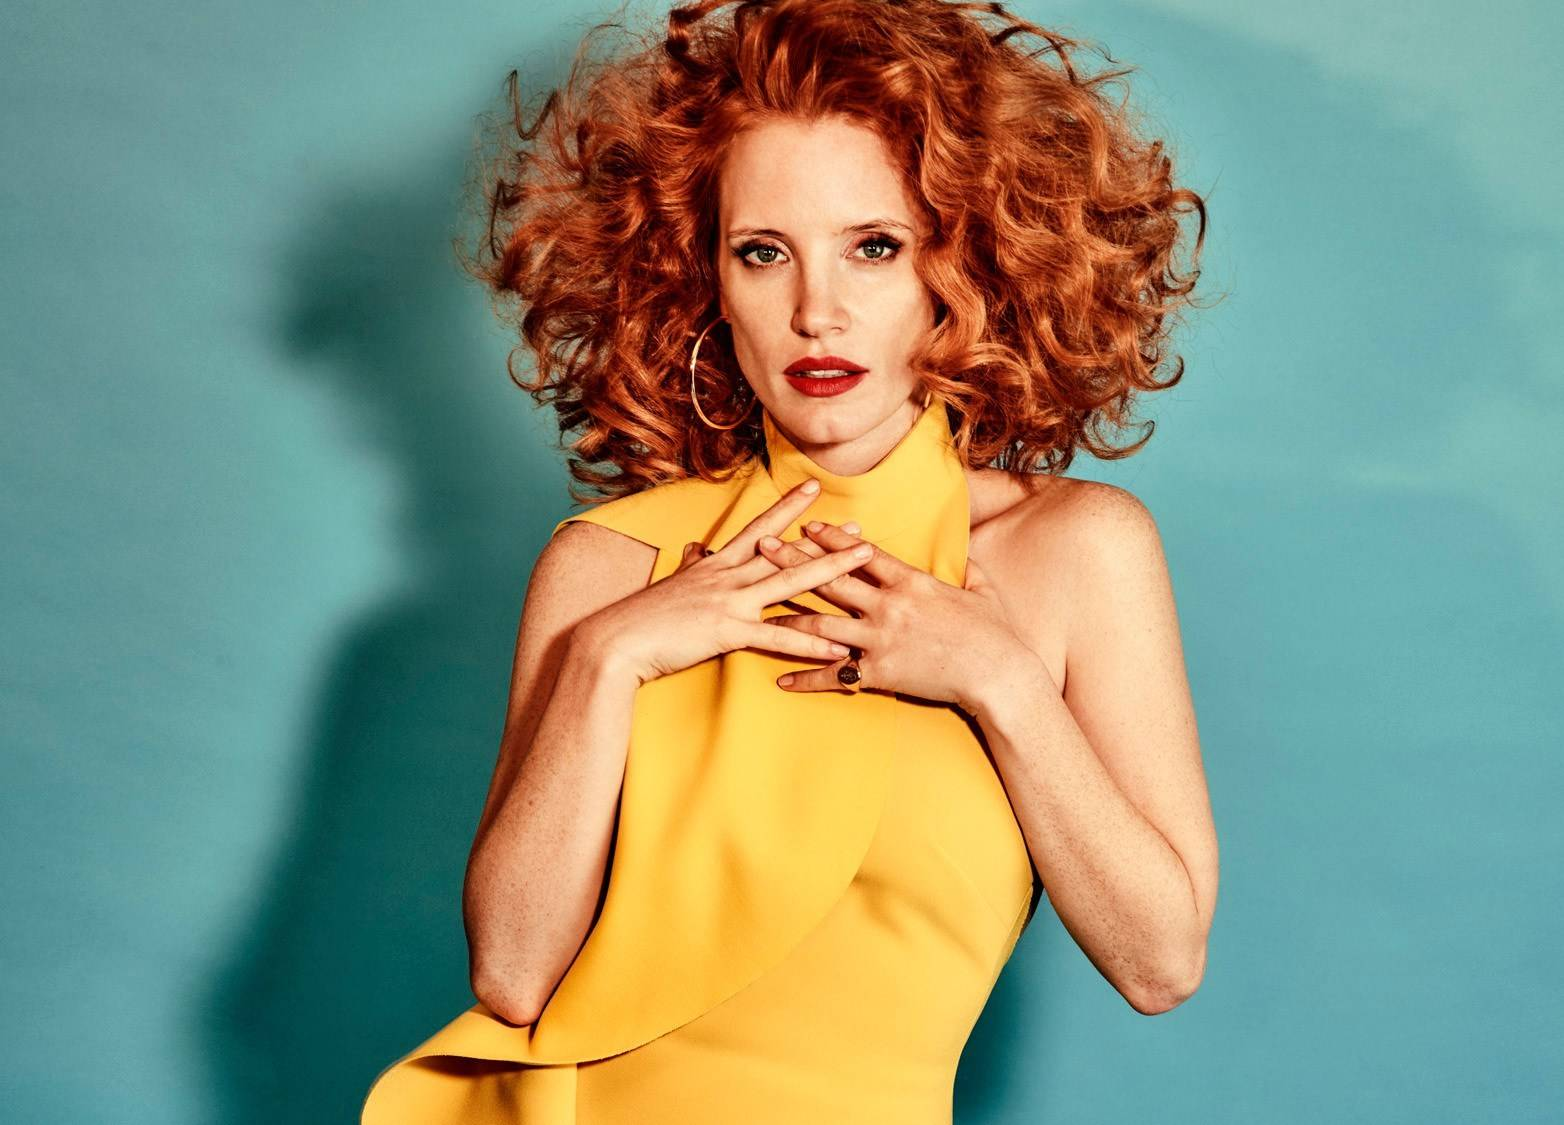 Jessica Chastain by Chris Colls for The Edit December 1, 2016